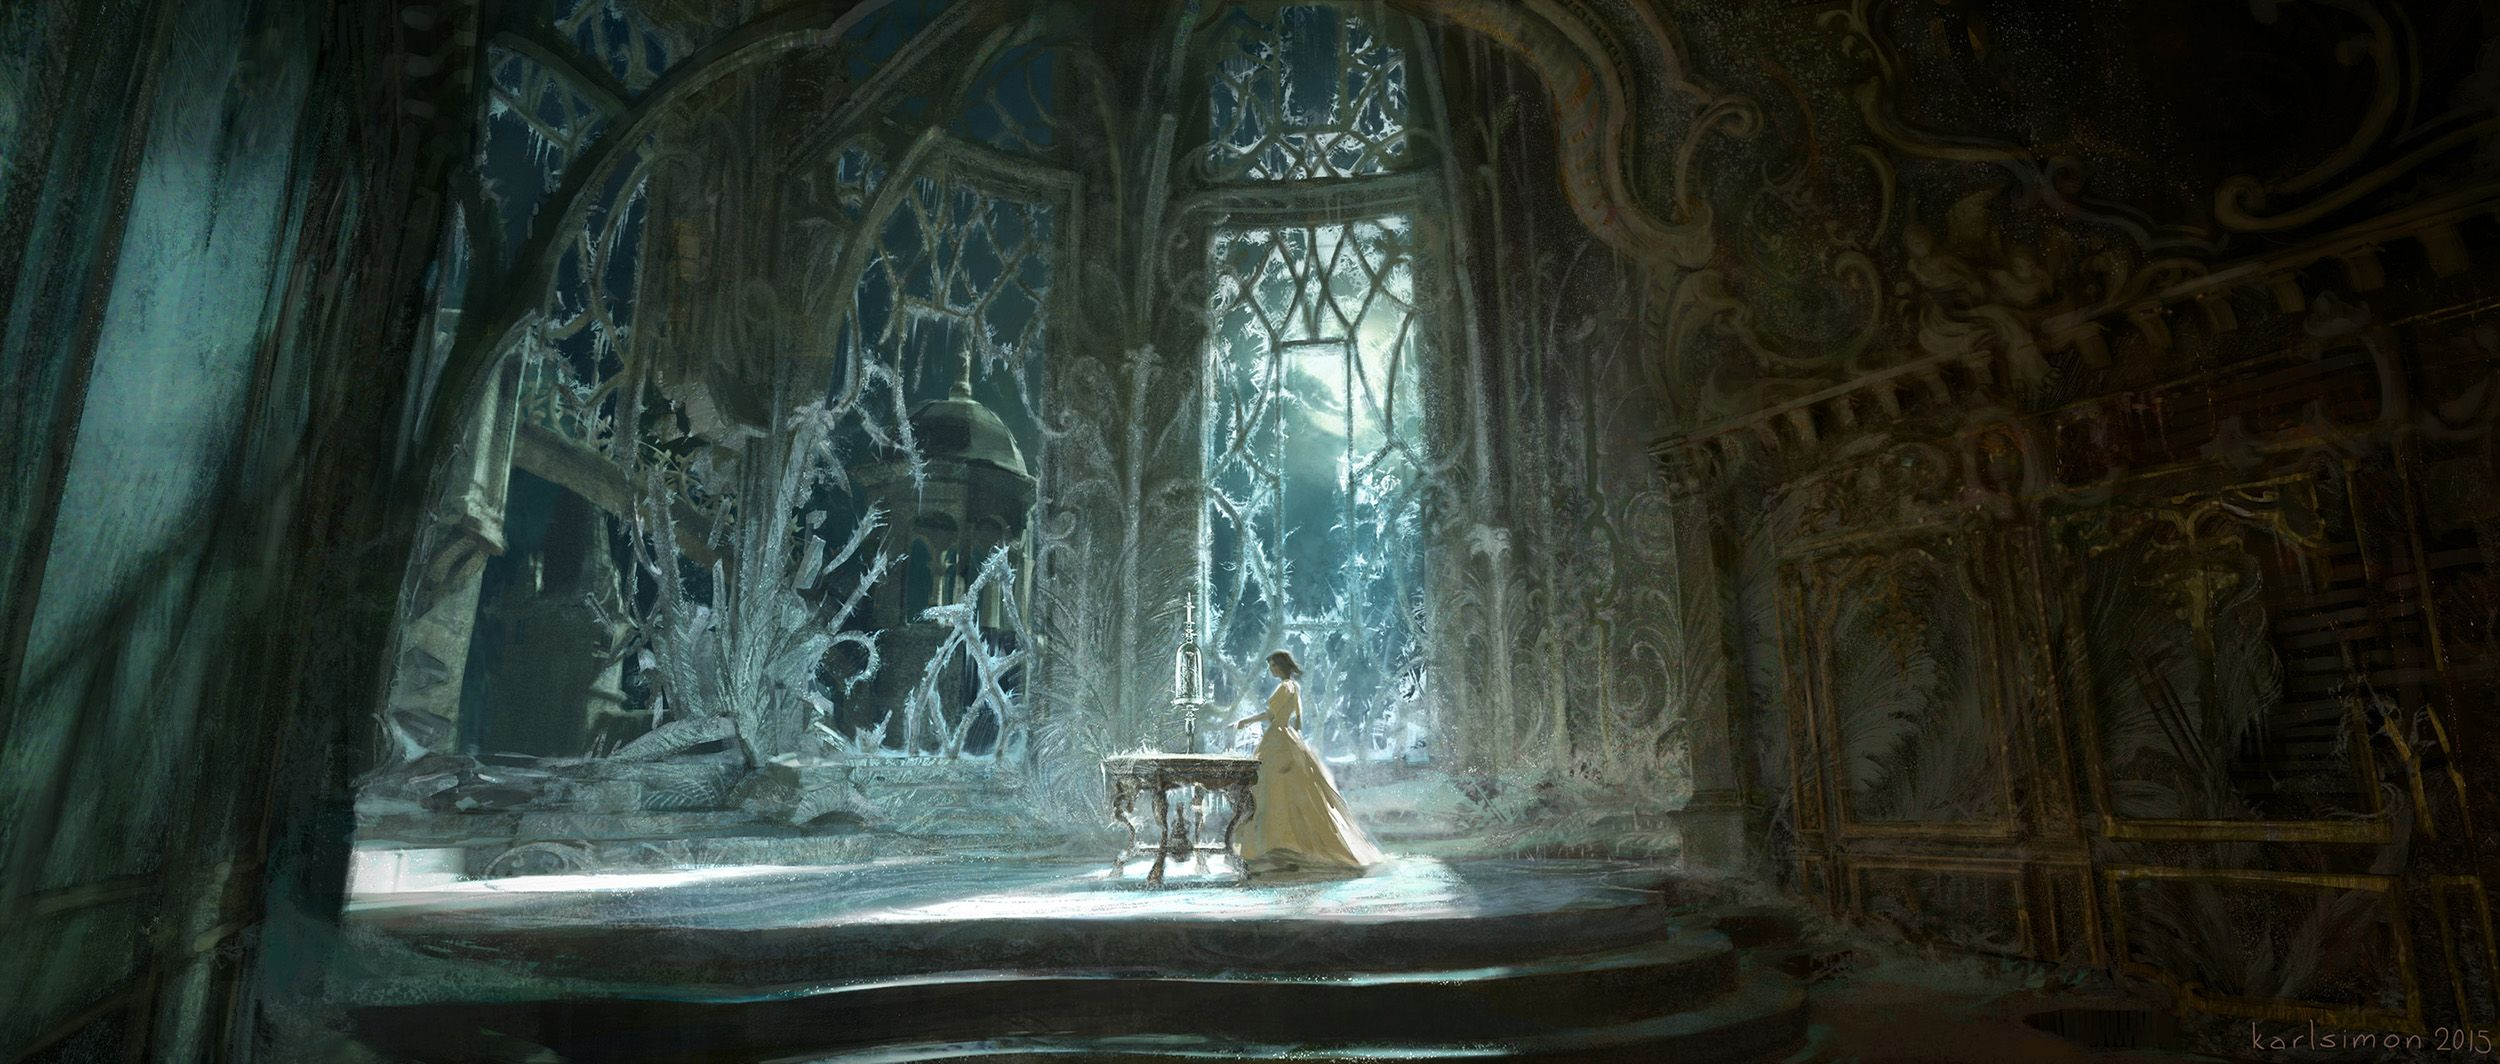 The Art Of Beauty And The Beast Beauty And The Beast Art Disney